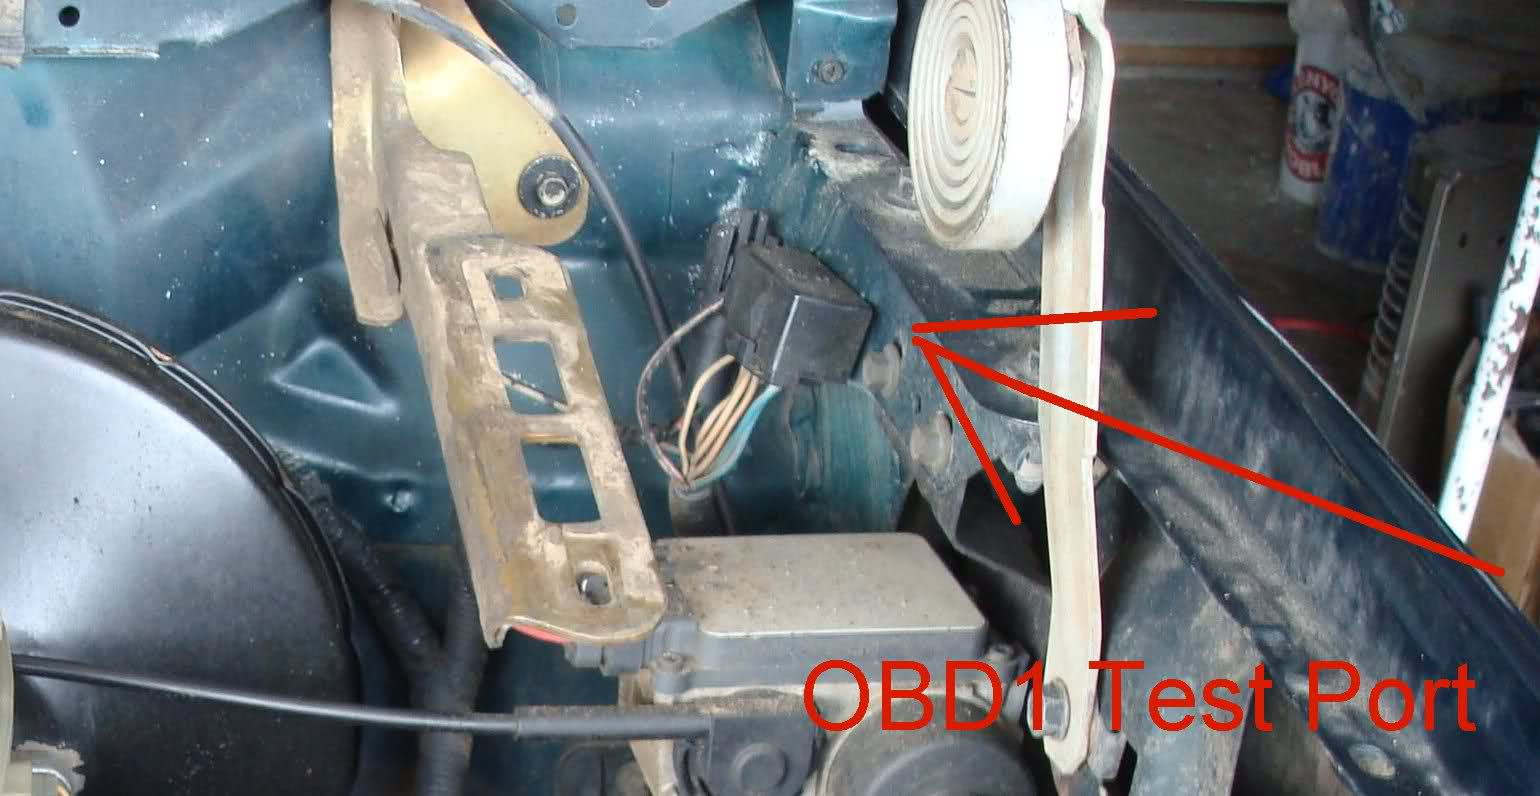 Im Working On A 1997 Ford 75l That Has No Spark I Am Getting 12 86 F 150 Ignition Coil Wiring 45229fe0 1de1 4a71 Ac27 566673e97031 F250 Obd1